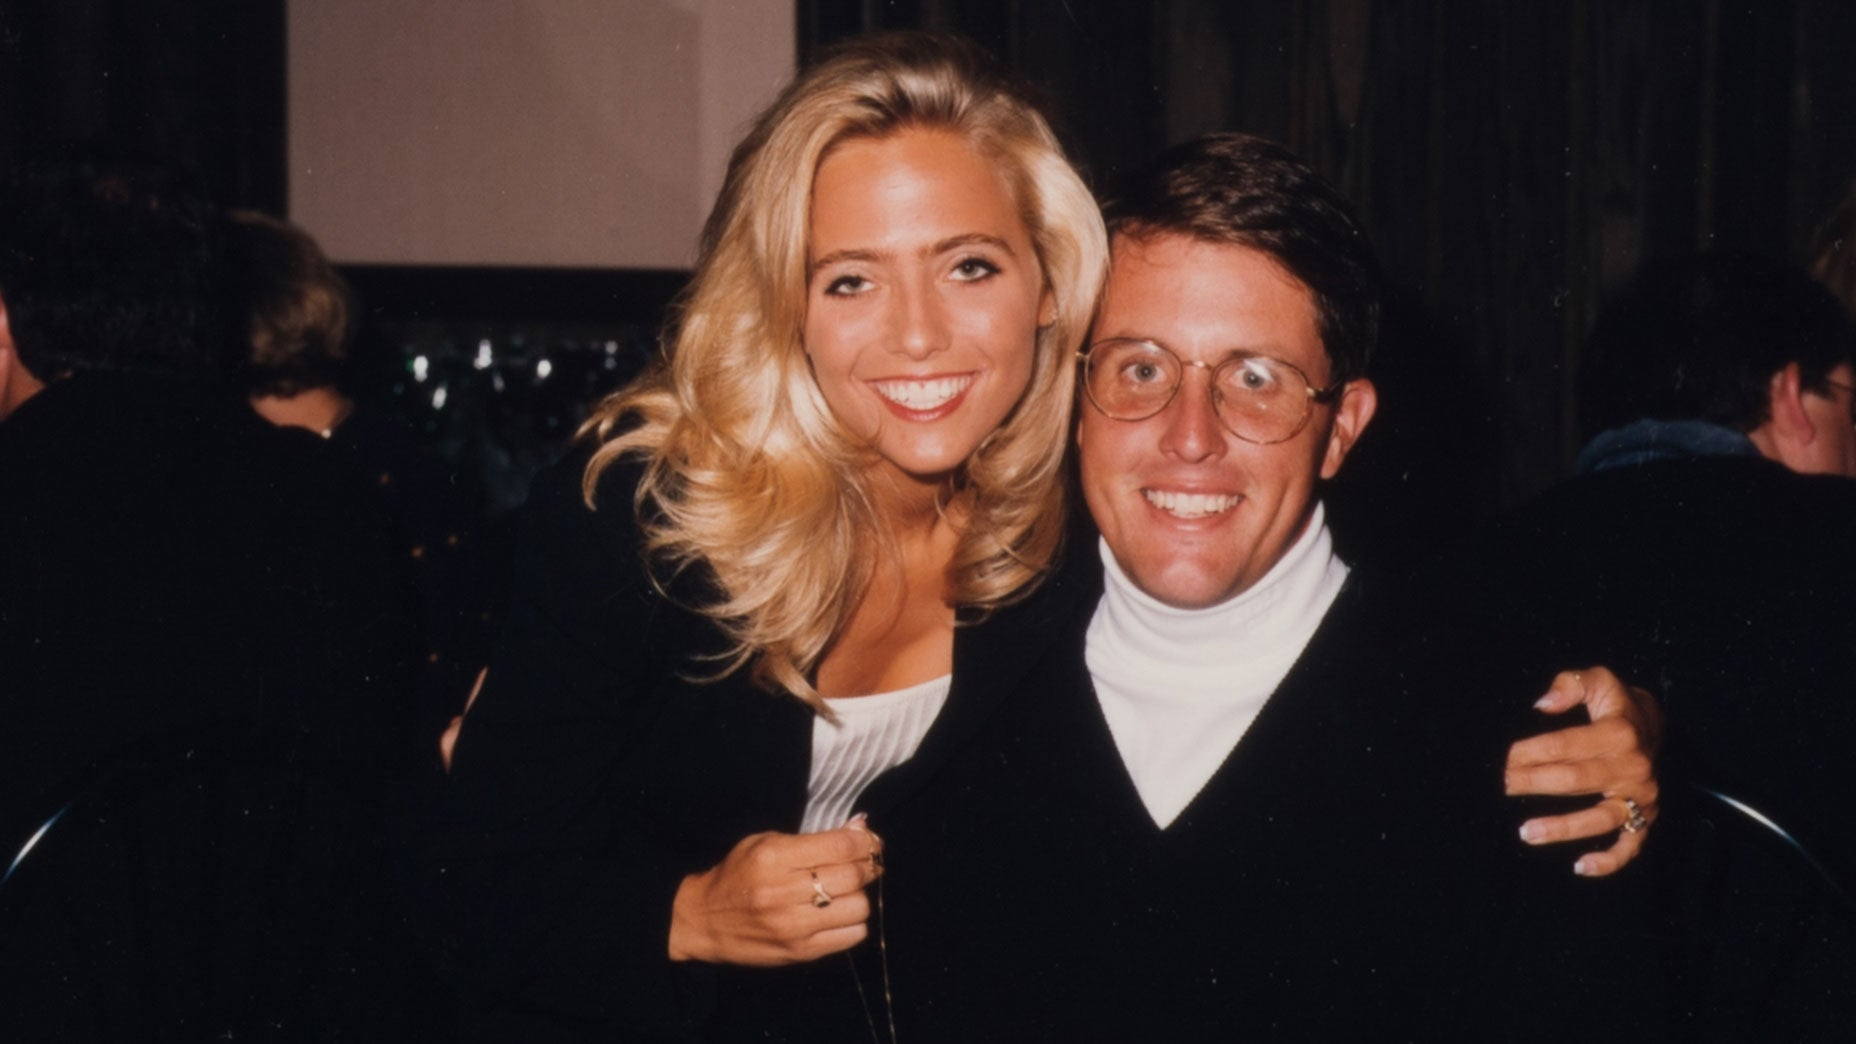 Amy and Phil Mickelson at the 1995 Ryder Cup.